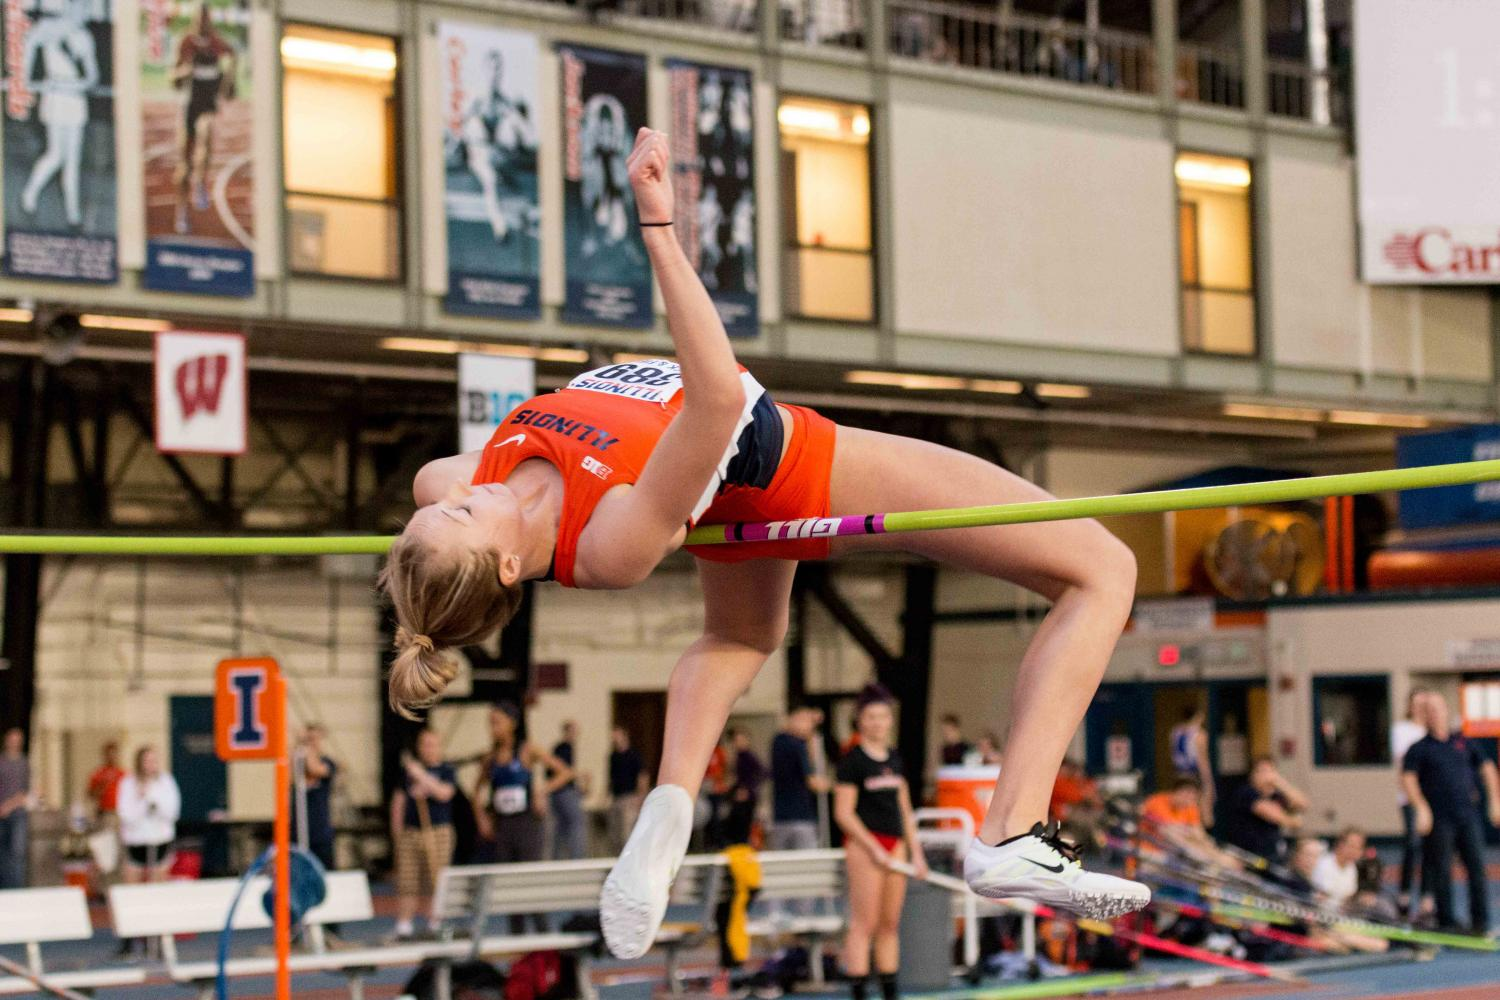 Illinois%27+Kandie+Bloch-Jones+attemps+the+high+jump+during+the+Orange+and+Blue+meet+on+Saturday%2C+February+20%2C+2016.+Kandie+won+the+high+jump+with+a+height+of+1.81+meters.